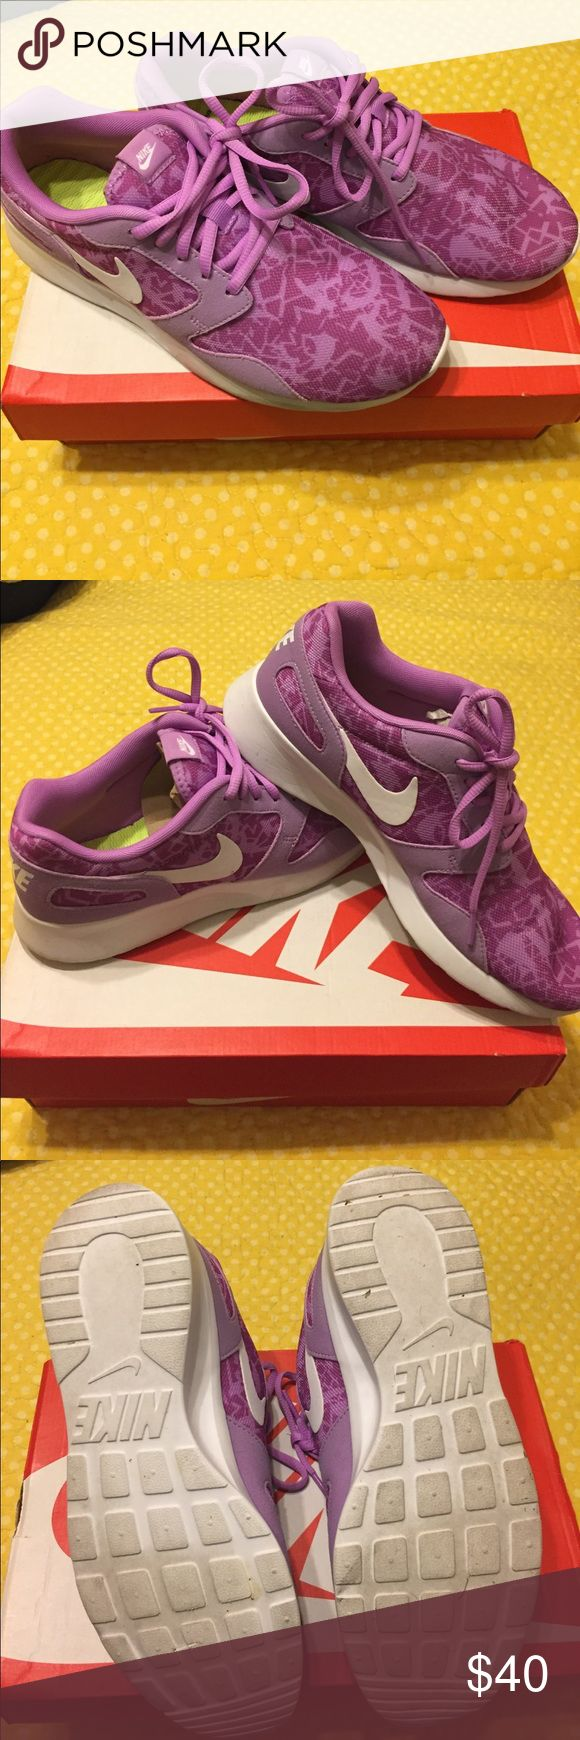 Lilac Nike Kaishi Print USED Authentic, purchased at Bealls. Women's size 9.5 used 5-6 times, very good condition. True to size. Selling because I need to downsize of tennis shoe collection to buy more :) Nike box included. open to reasonable offers, no trades Nike Shoes Athletic Shoes